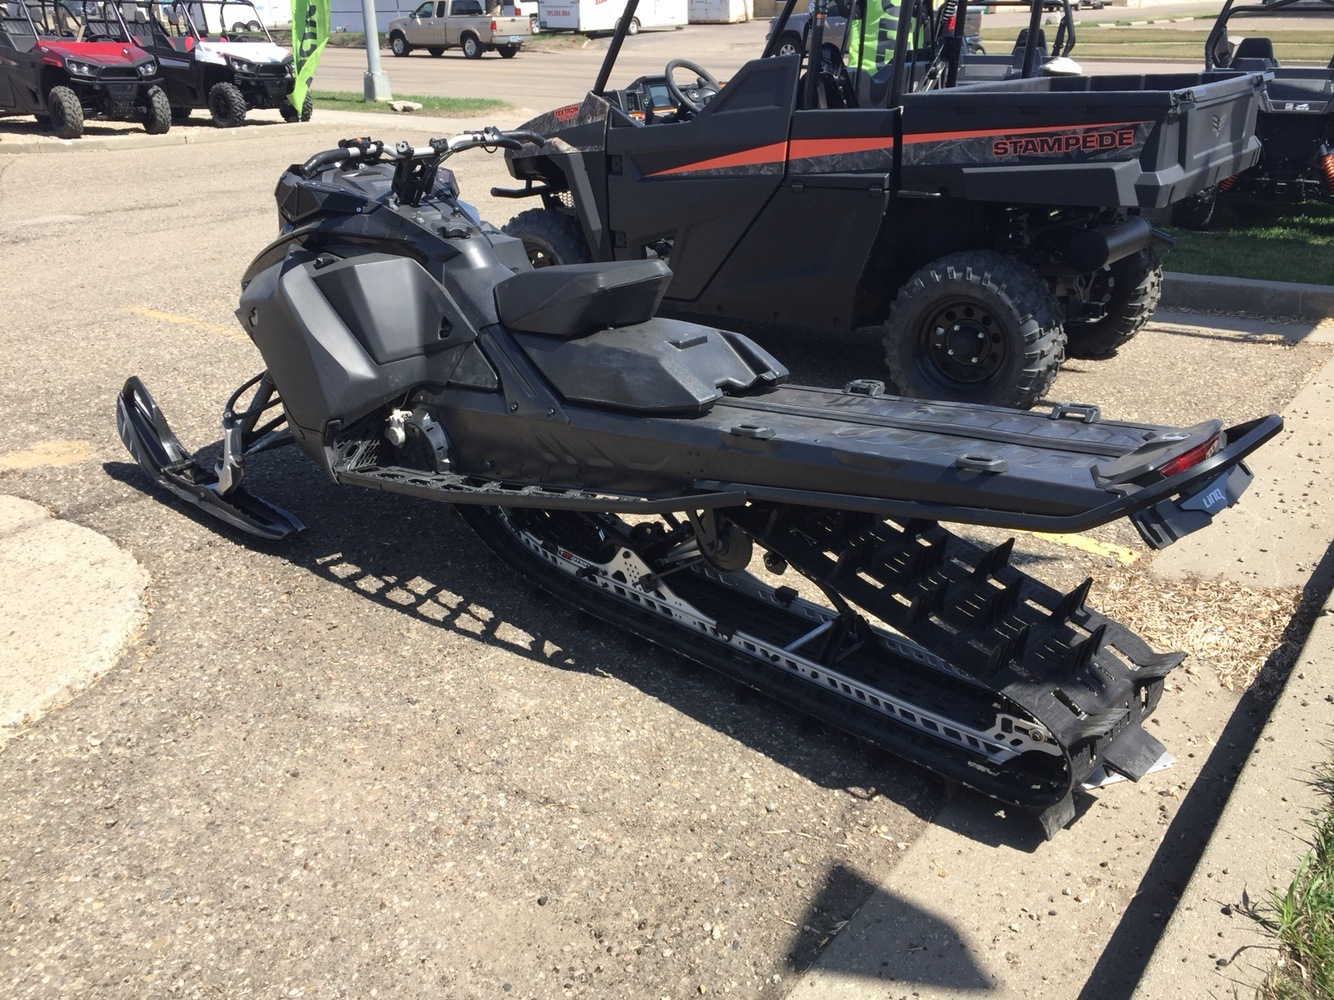 2017 Ski-Doo Summit X 165 850 E-TEC, PowderMax 3.0 in. in Bismarck, North Dakota - Photo 2